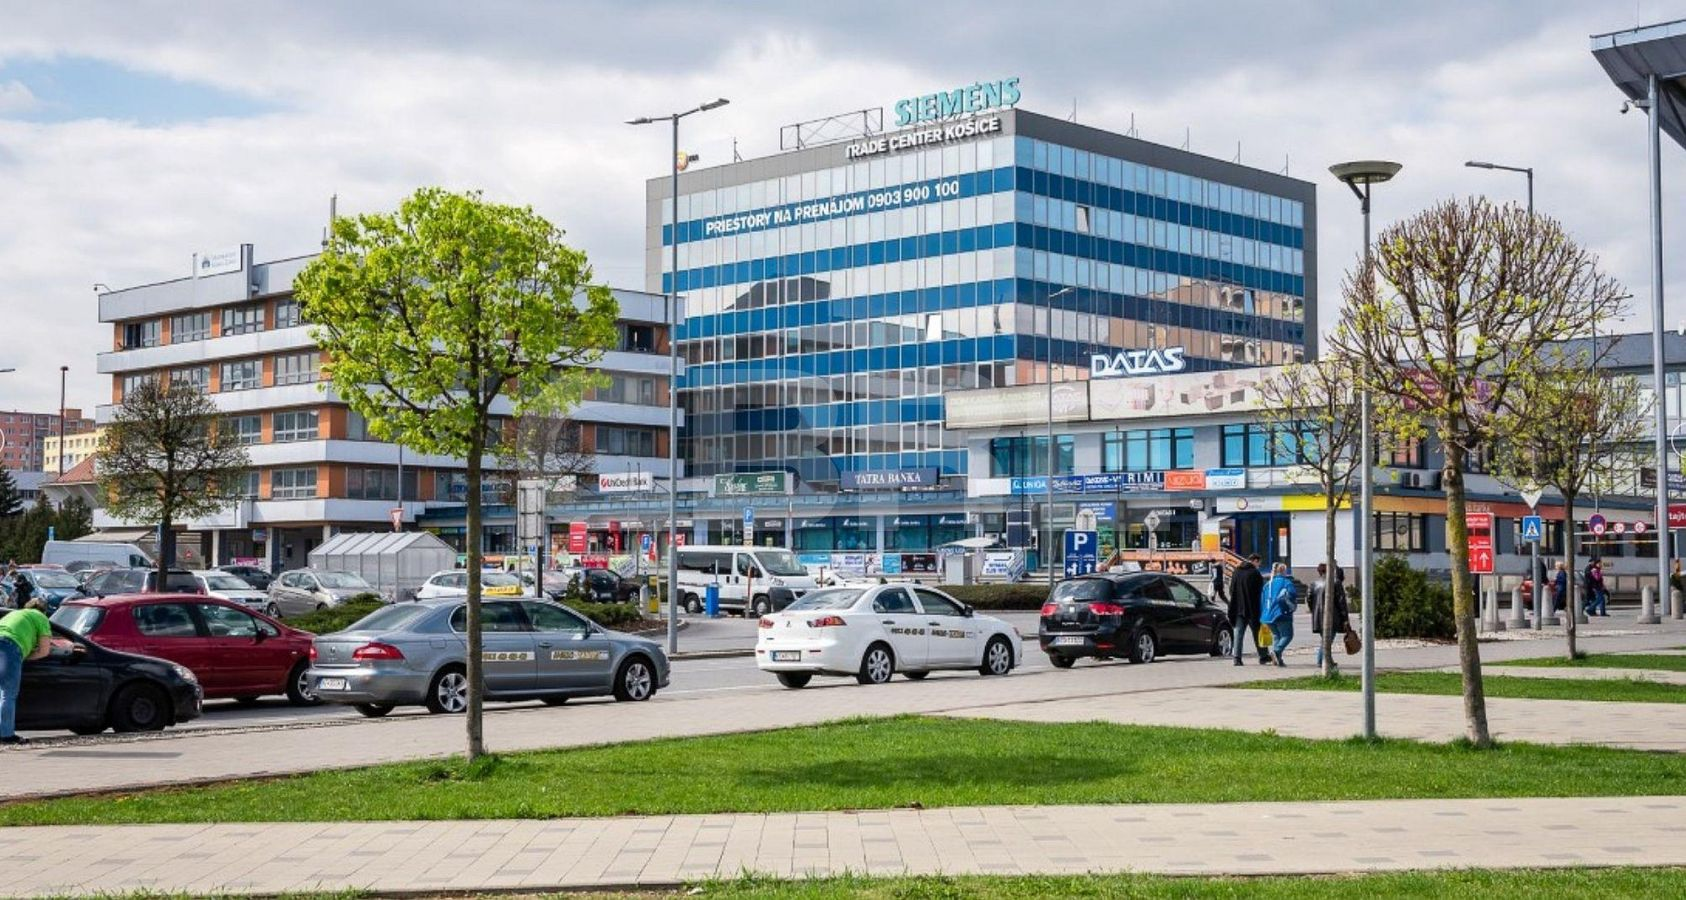 Trade Center Košice, Košice - Staré Mesto | Offices for rent by CBRE | 3